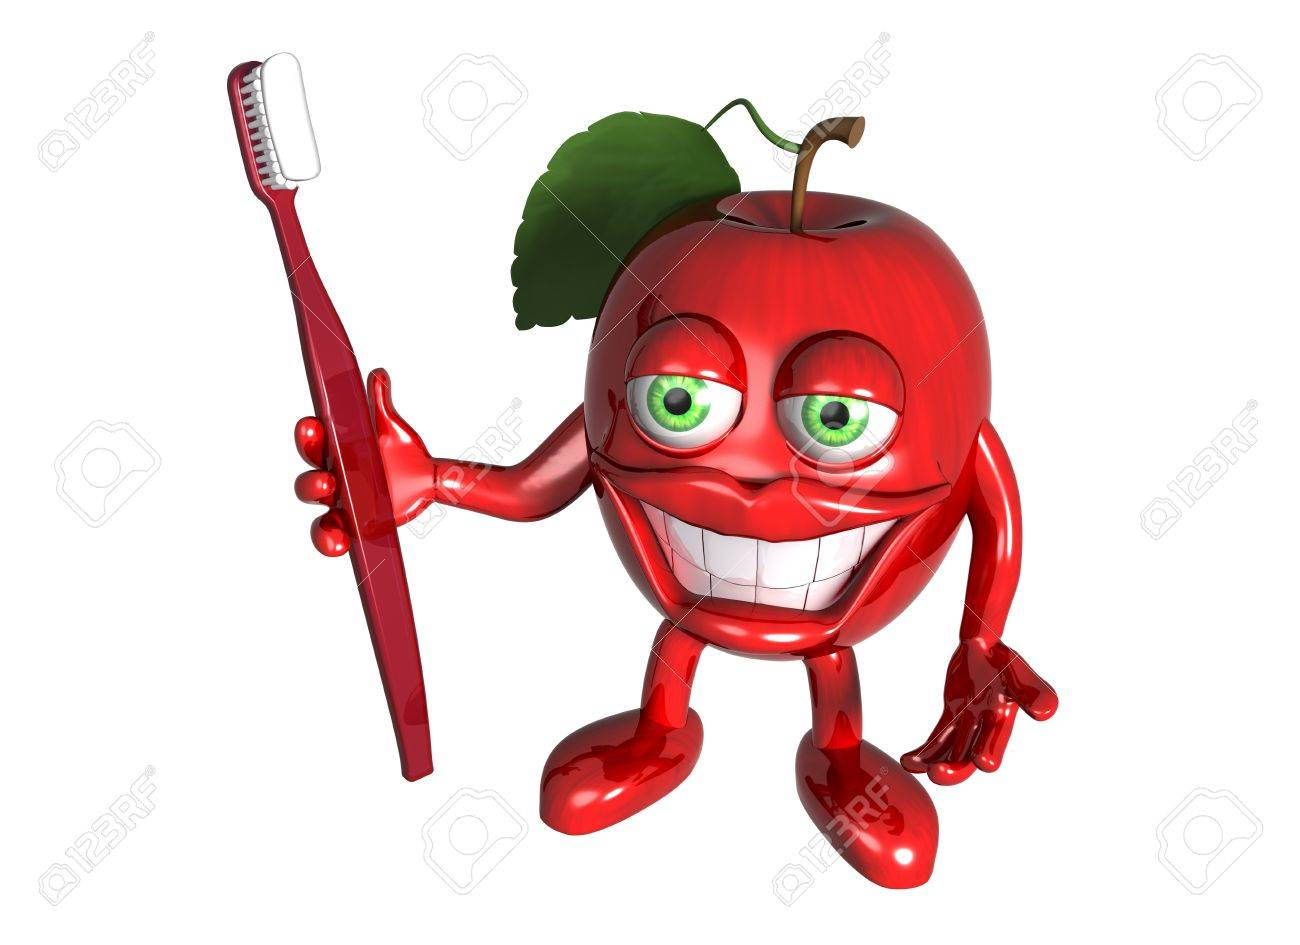 Isolated illustration of a cartoon red apple with a big toothbrush and white teeth Stock Illustration - 4525945